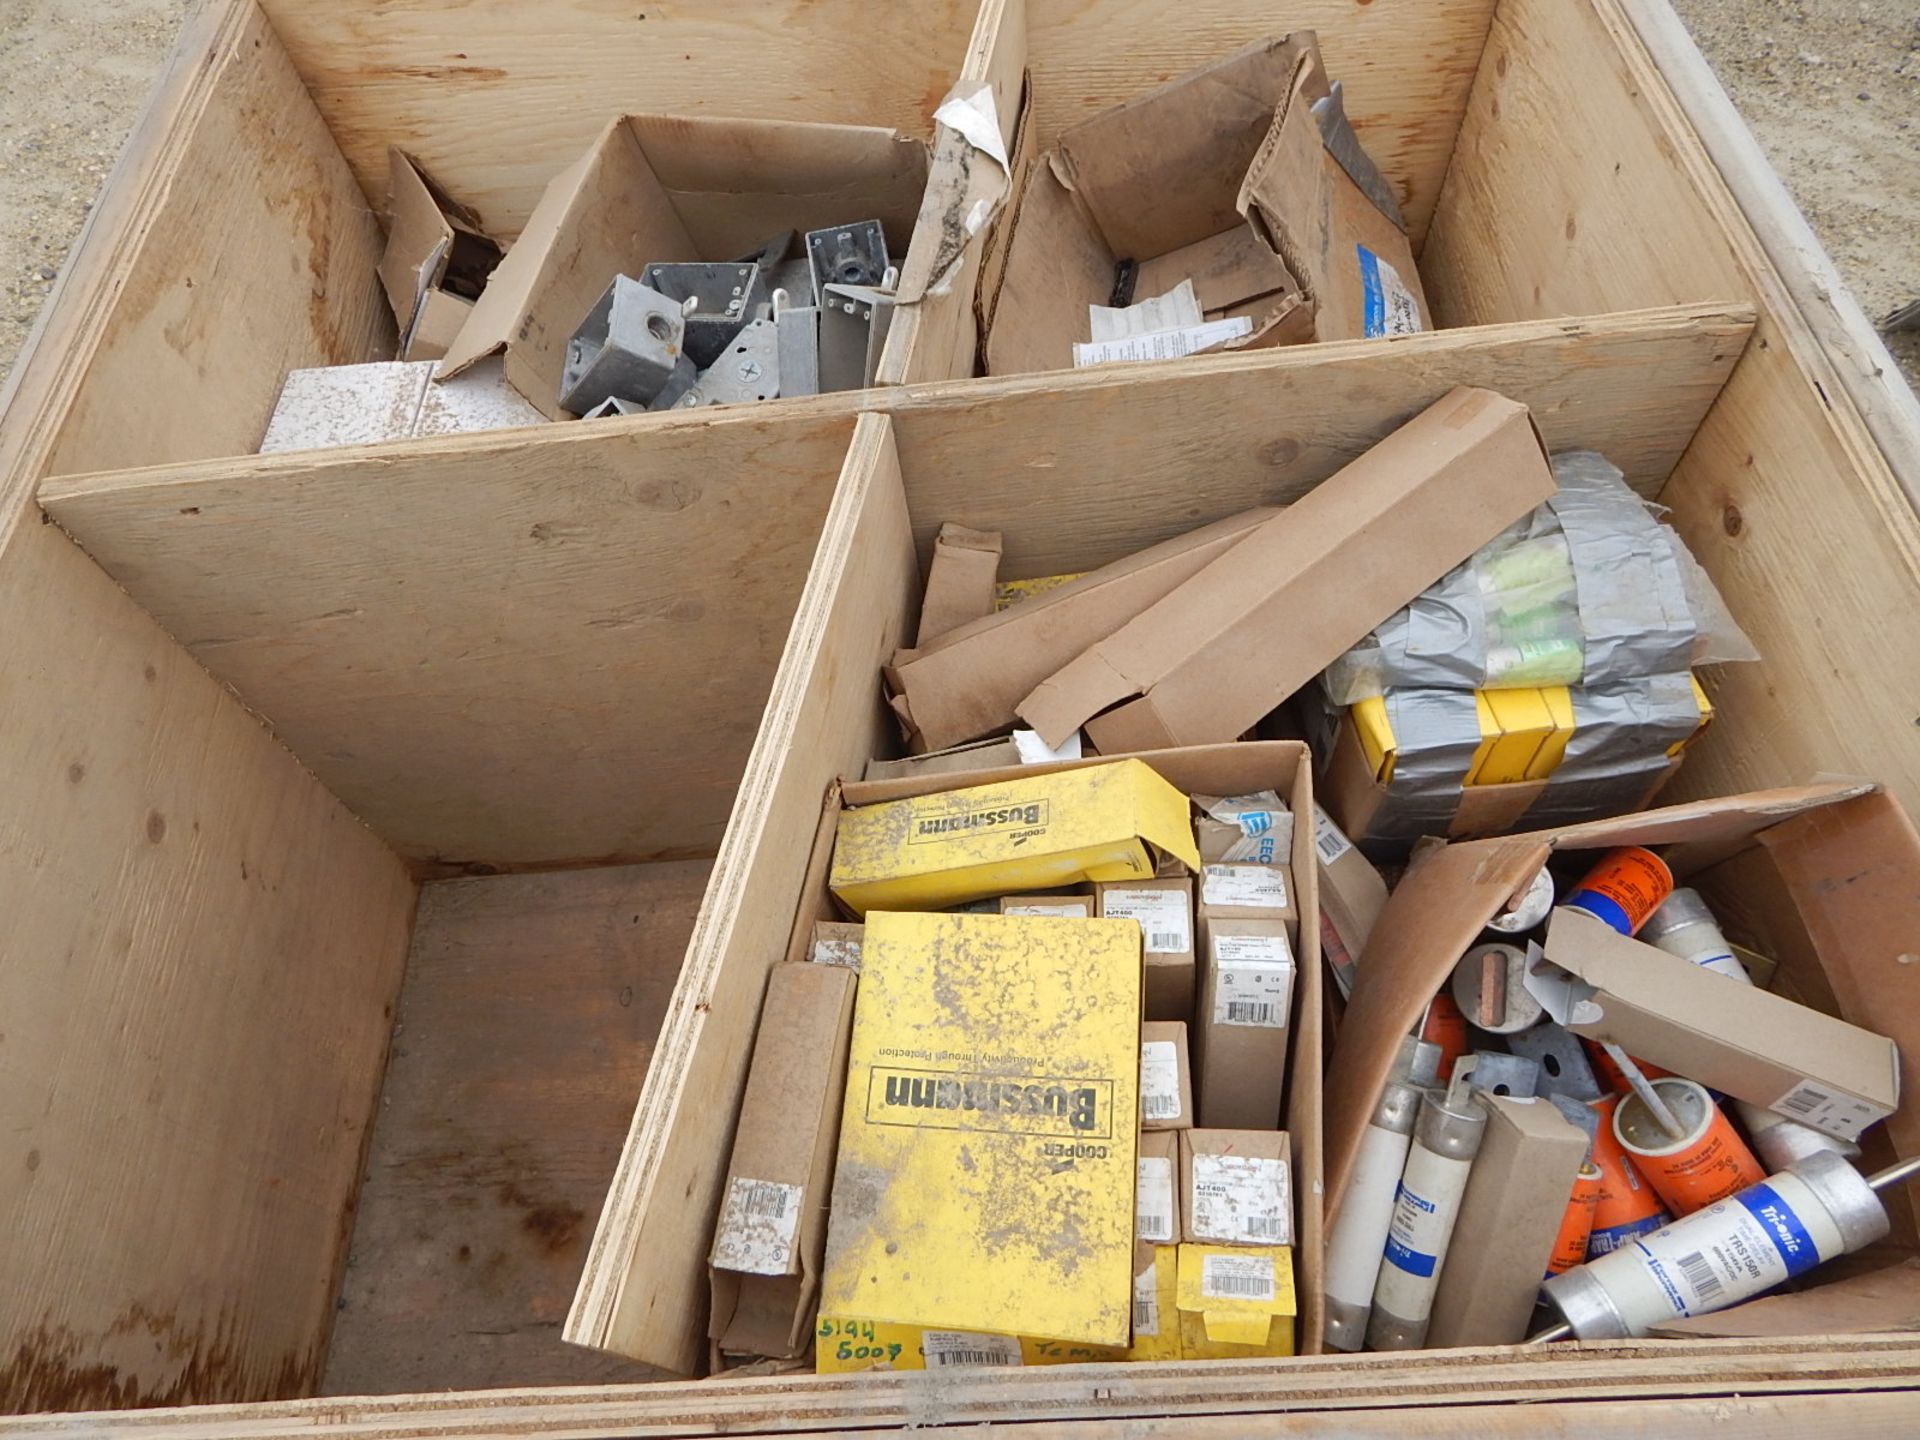 LOT/ CONTENTS OF CRATE CONSISTING OF ELECTRICAL AND LIGHTING HARDWARE - Image 2 of 2